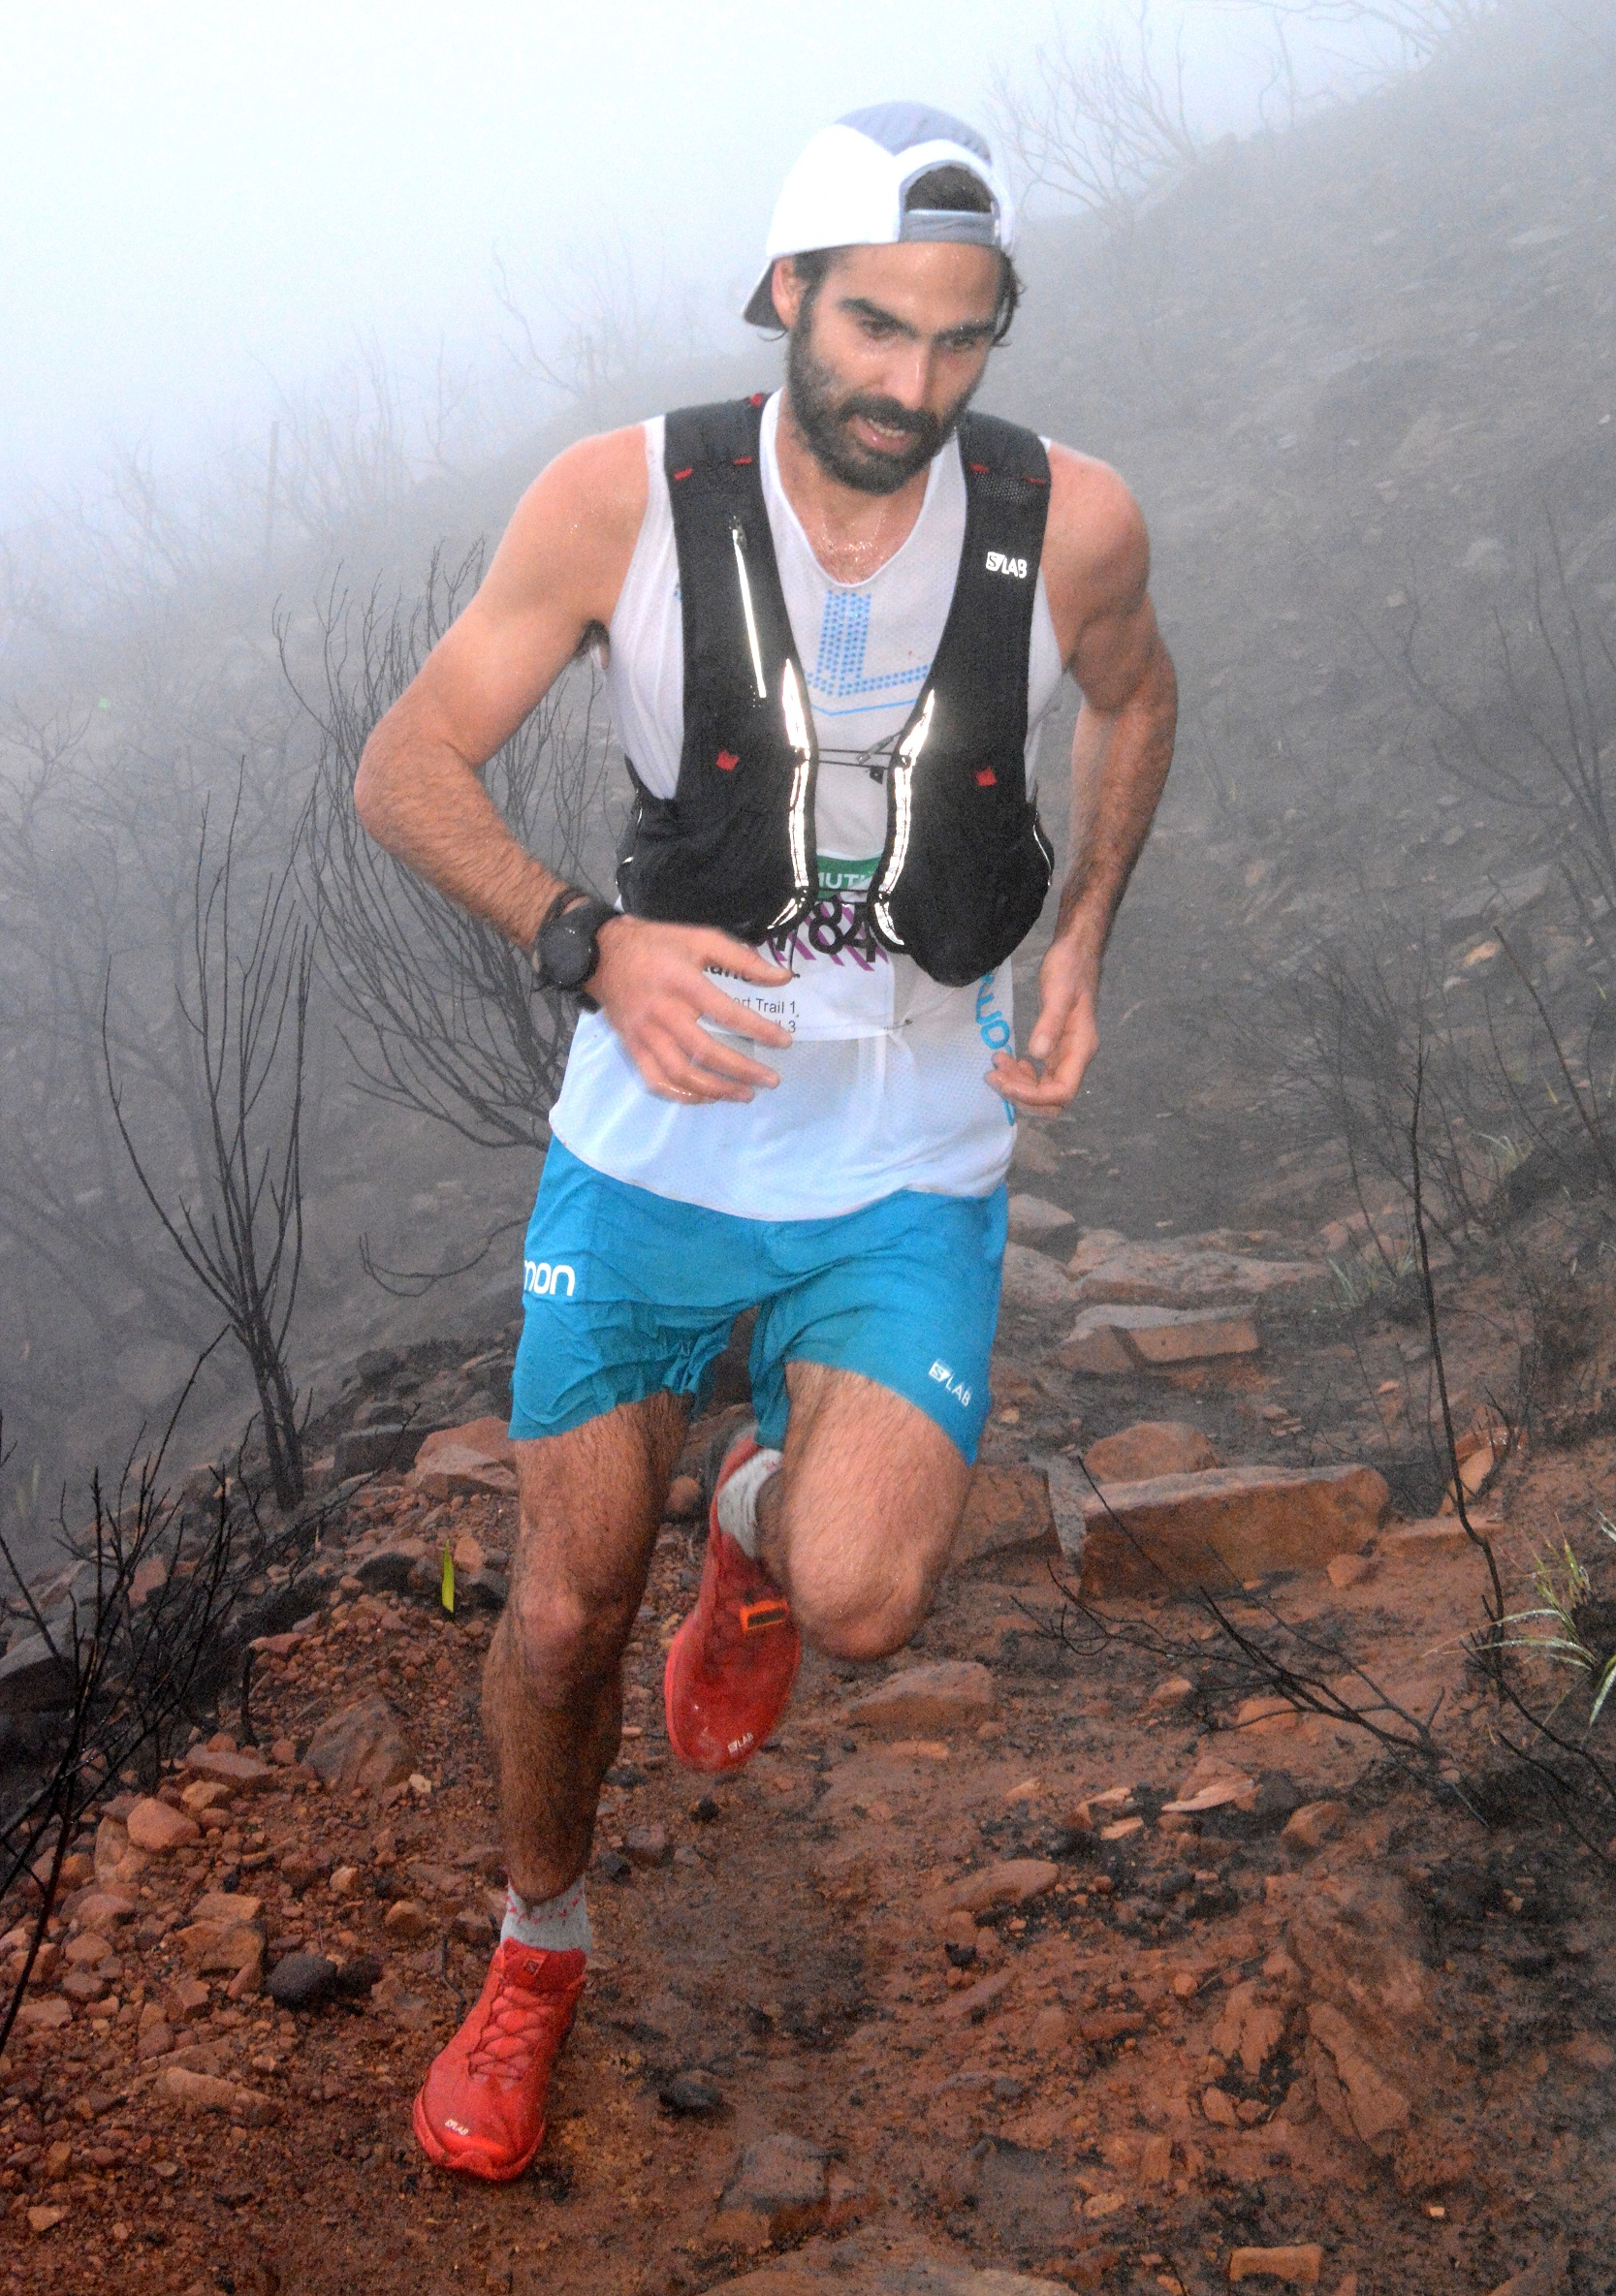 Kane Reilly Mixing It Up Ahead Of Golden Trail Series photo